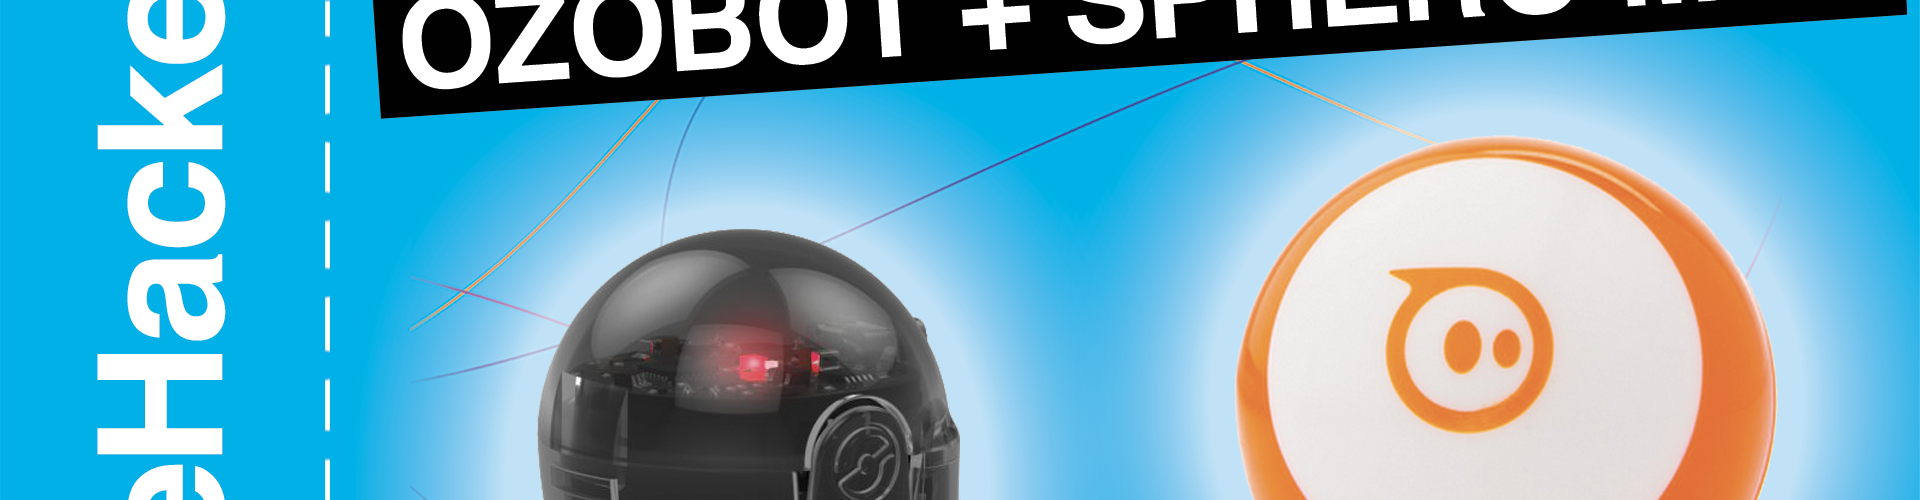 LifeHacker Ozobot Sphero Mini